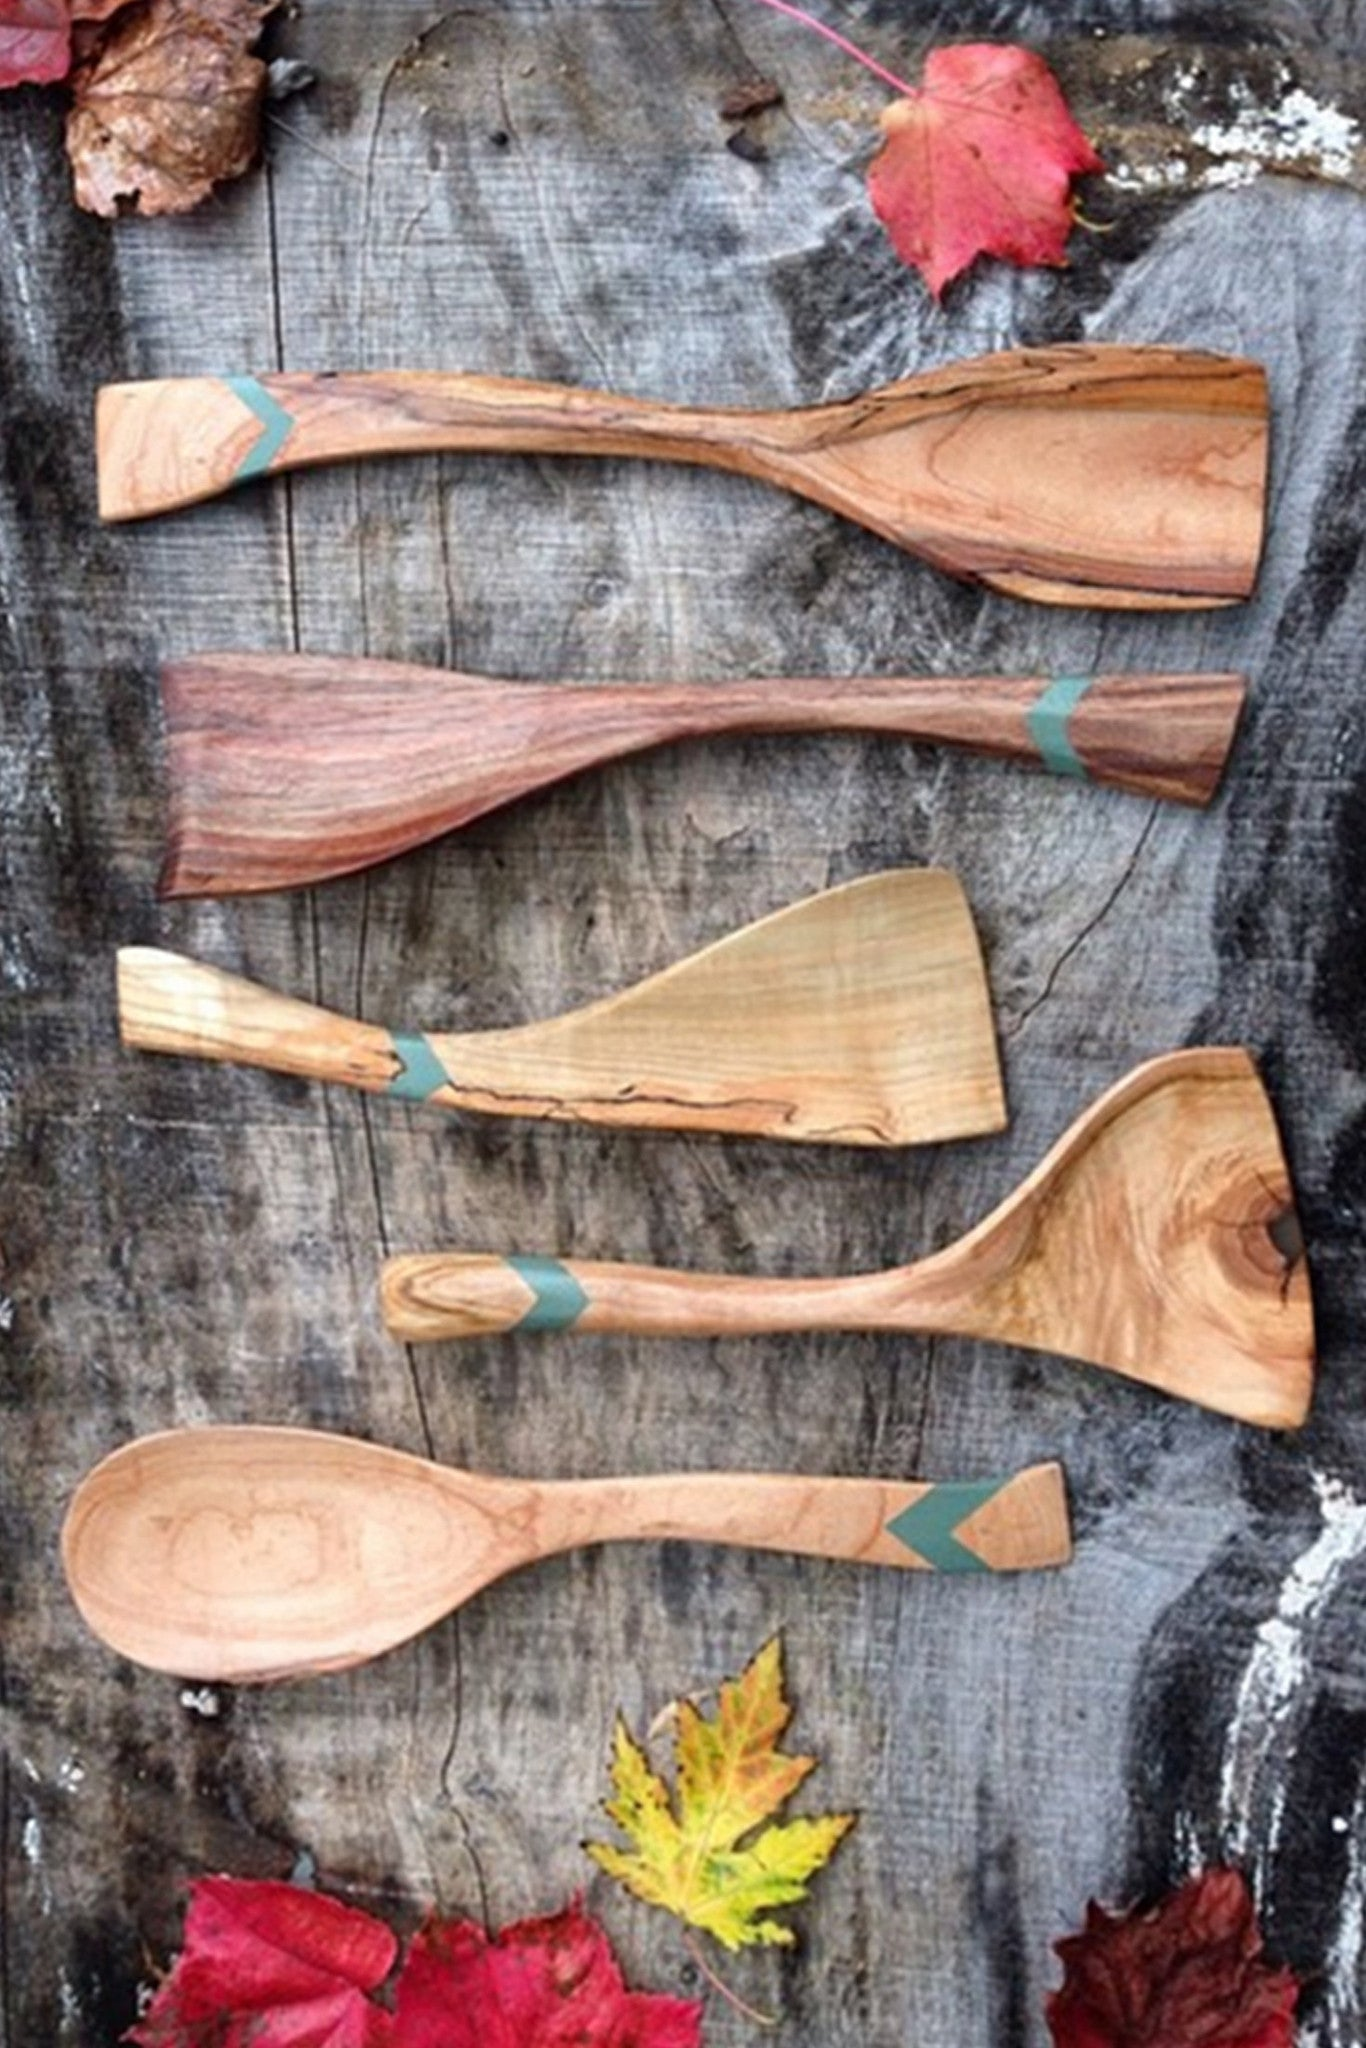 Greta de Parry Glacier National Park Chico Hot Springs Collective Quarterly Handmade Spoons